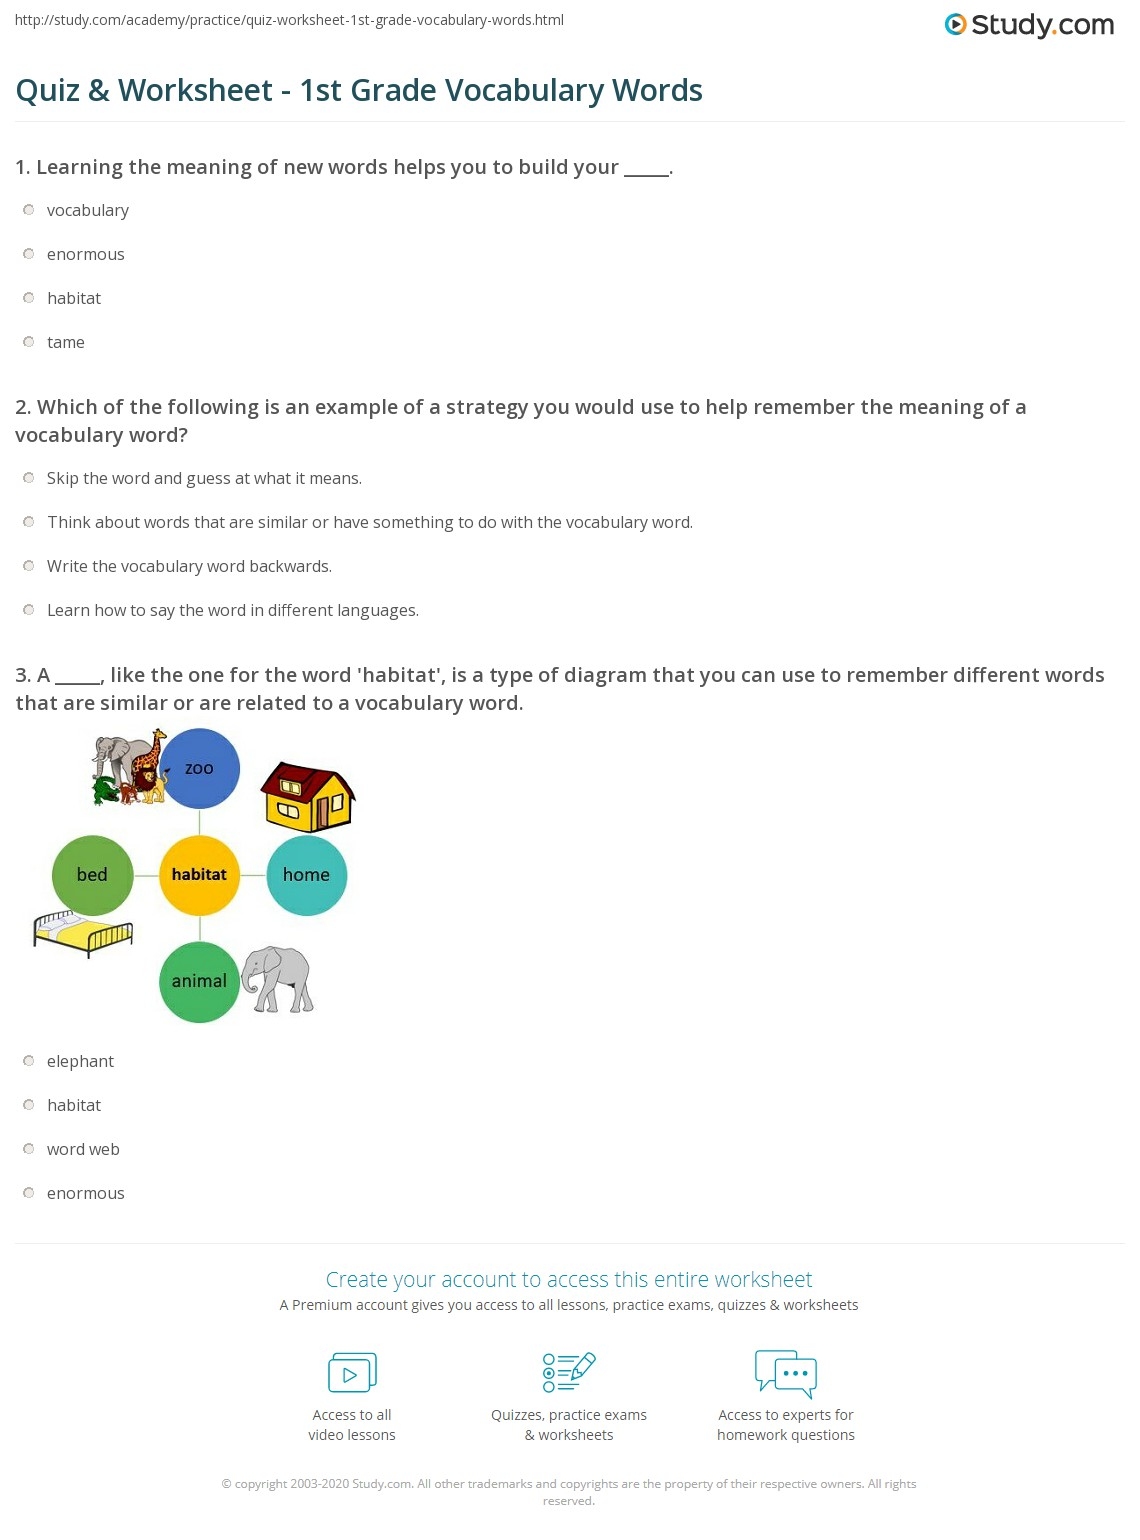 vocabulary words with meaning and example